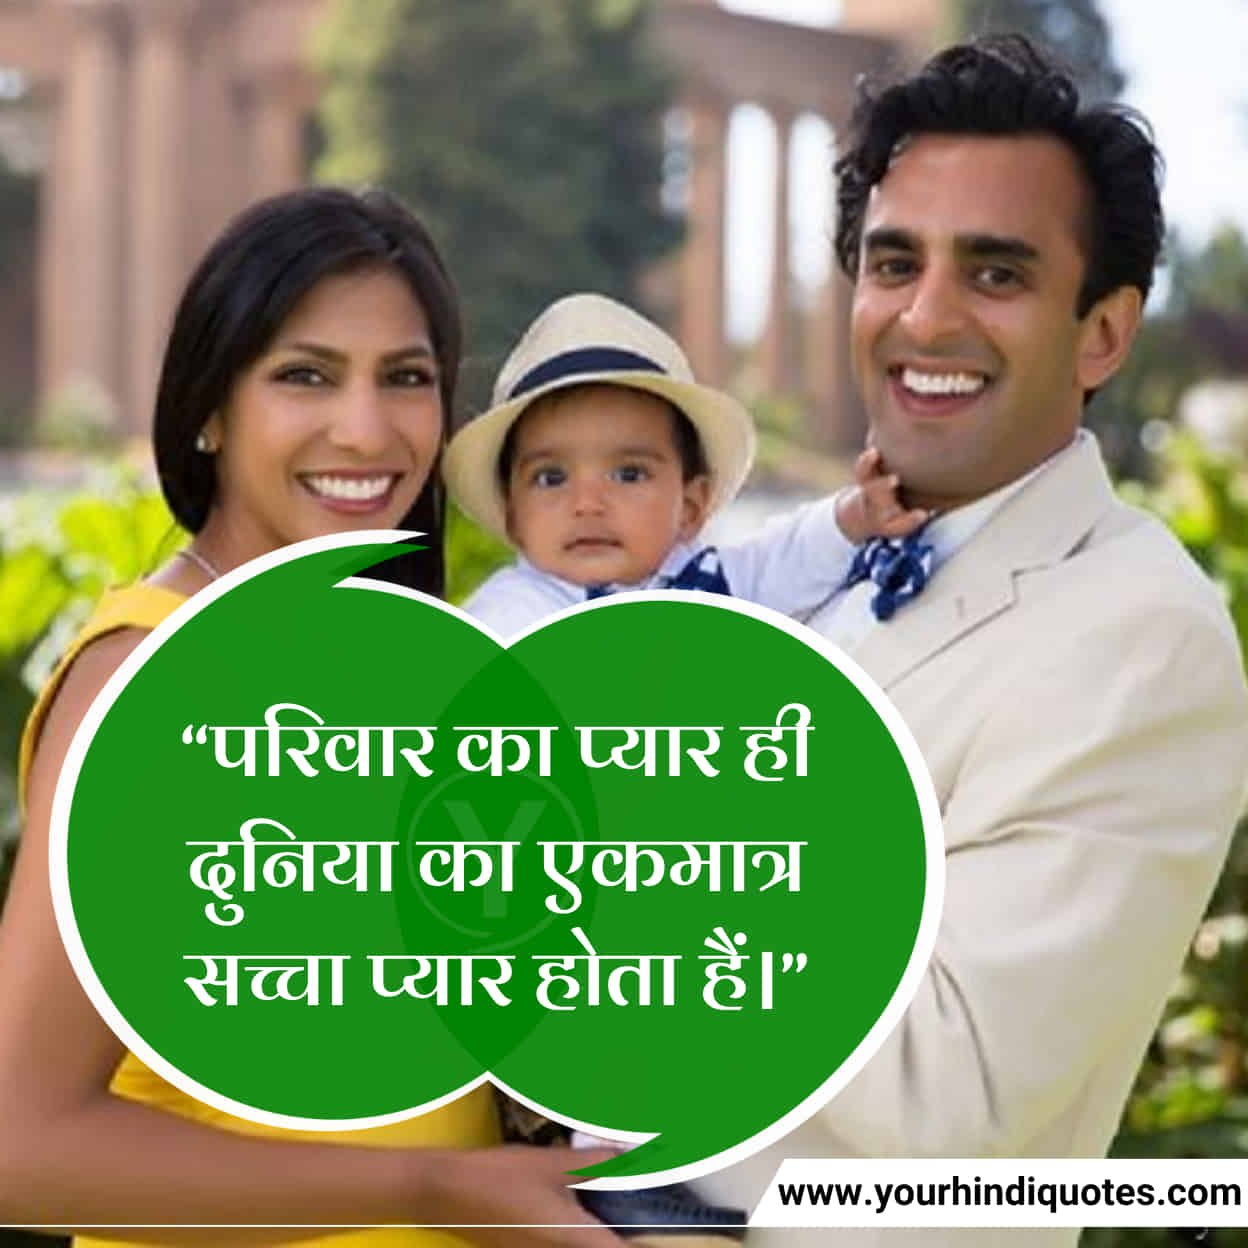 Quotes For Beautiful Family In Hindi